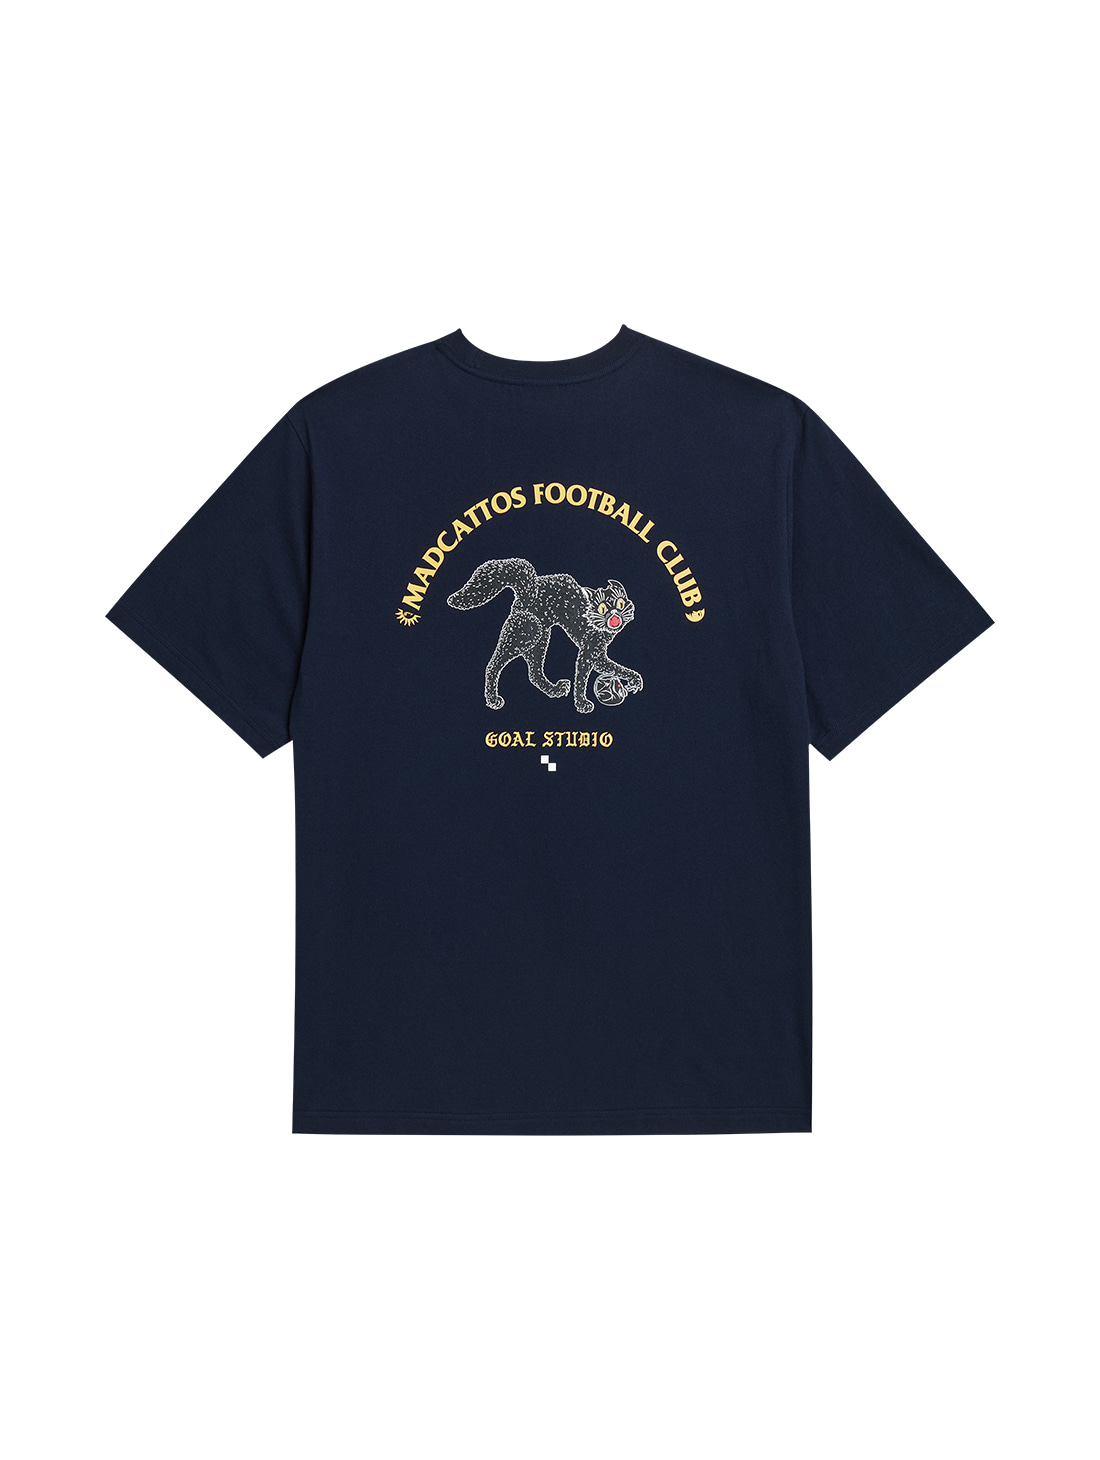 GOALSTUDIO MC GRAPHIC TEE - NAVY